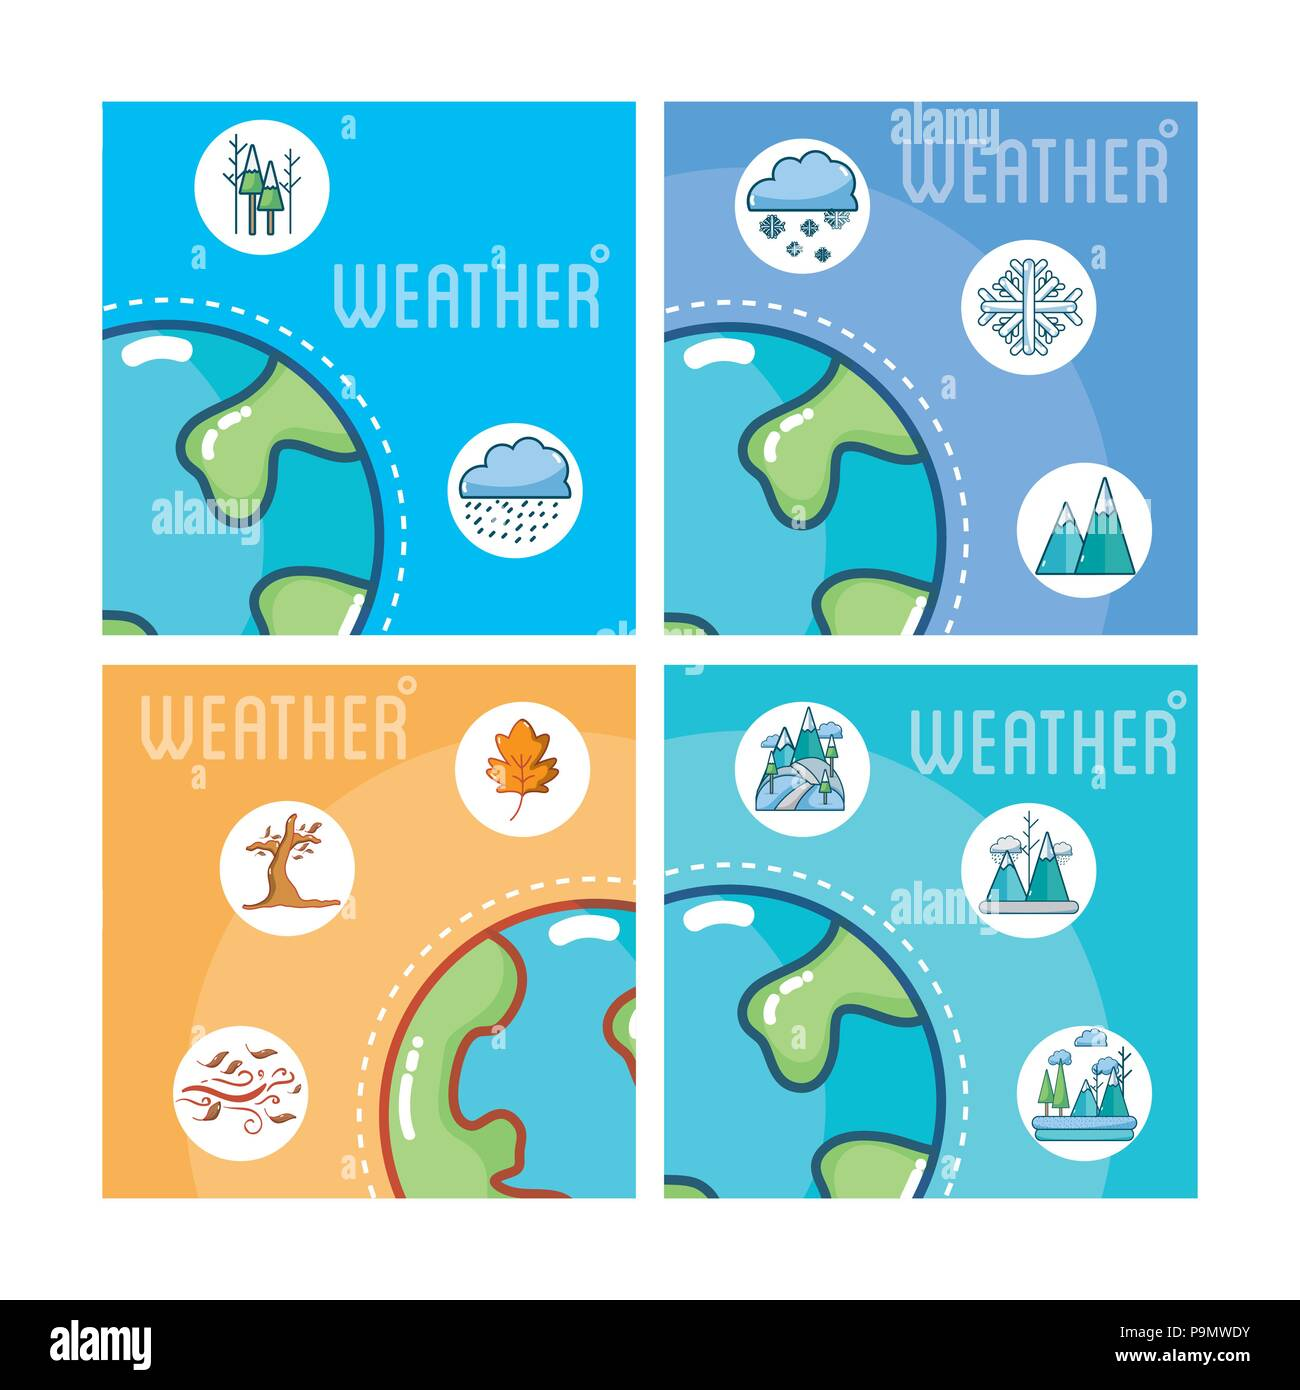 Set of weather cards - Stock Image